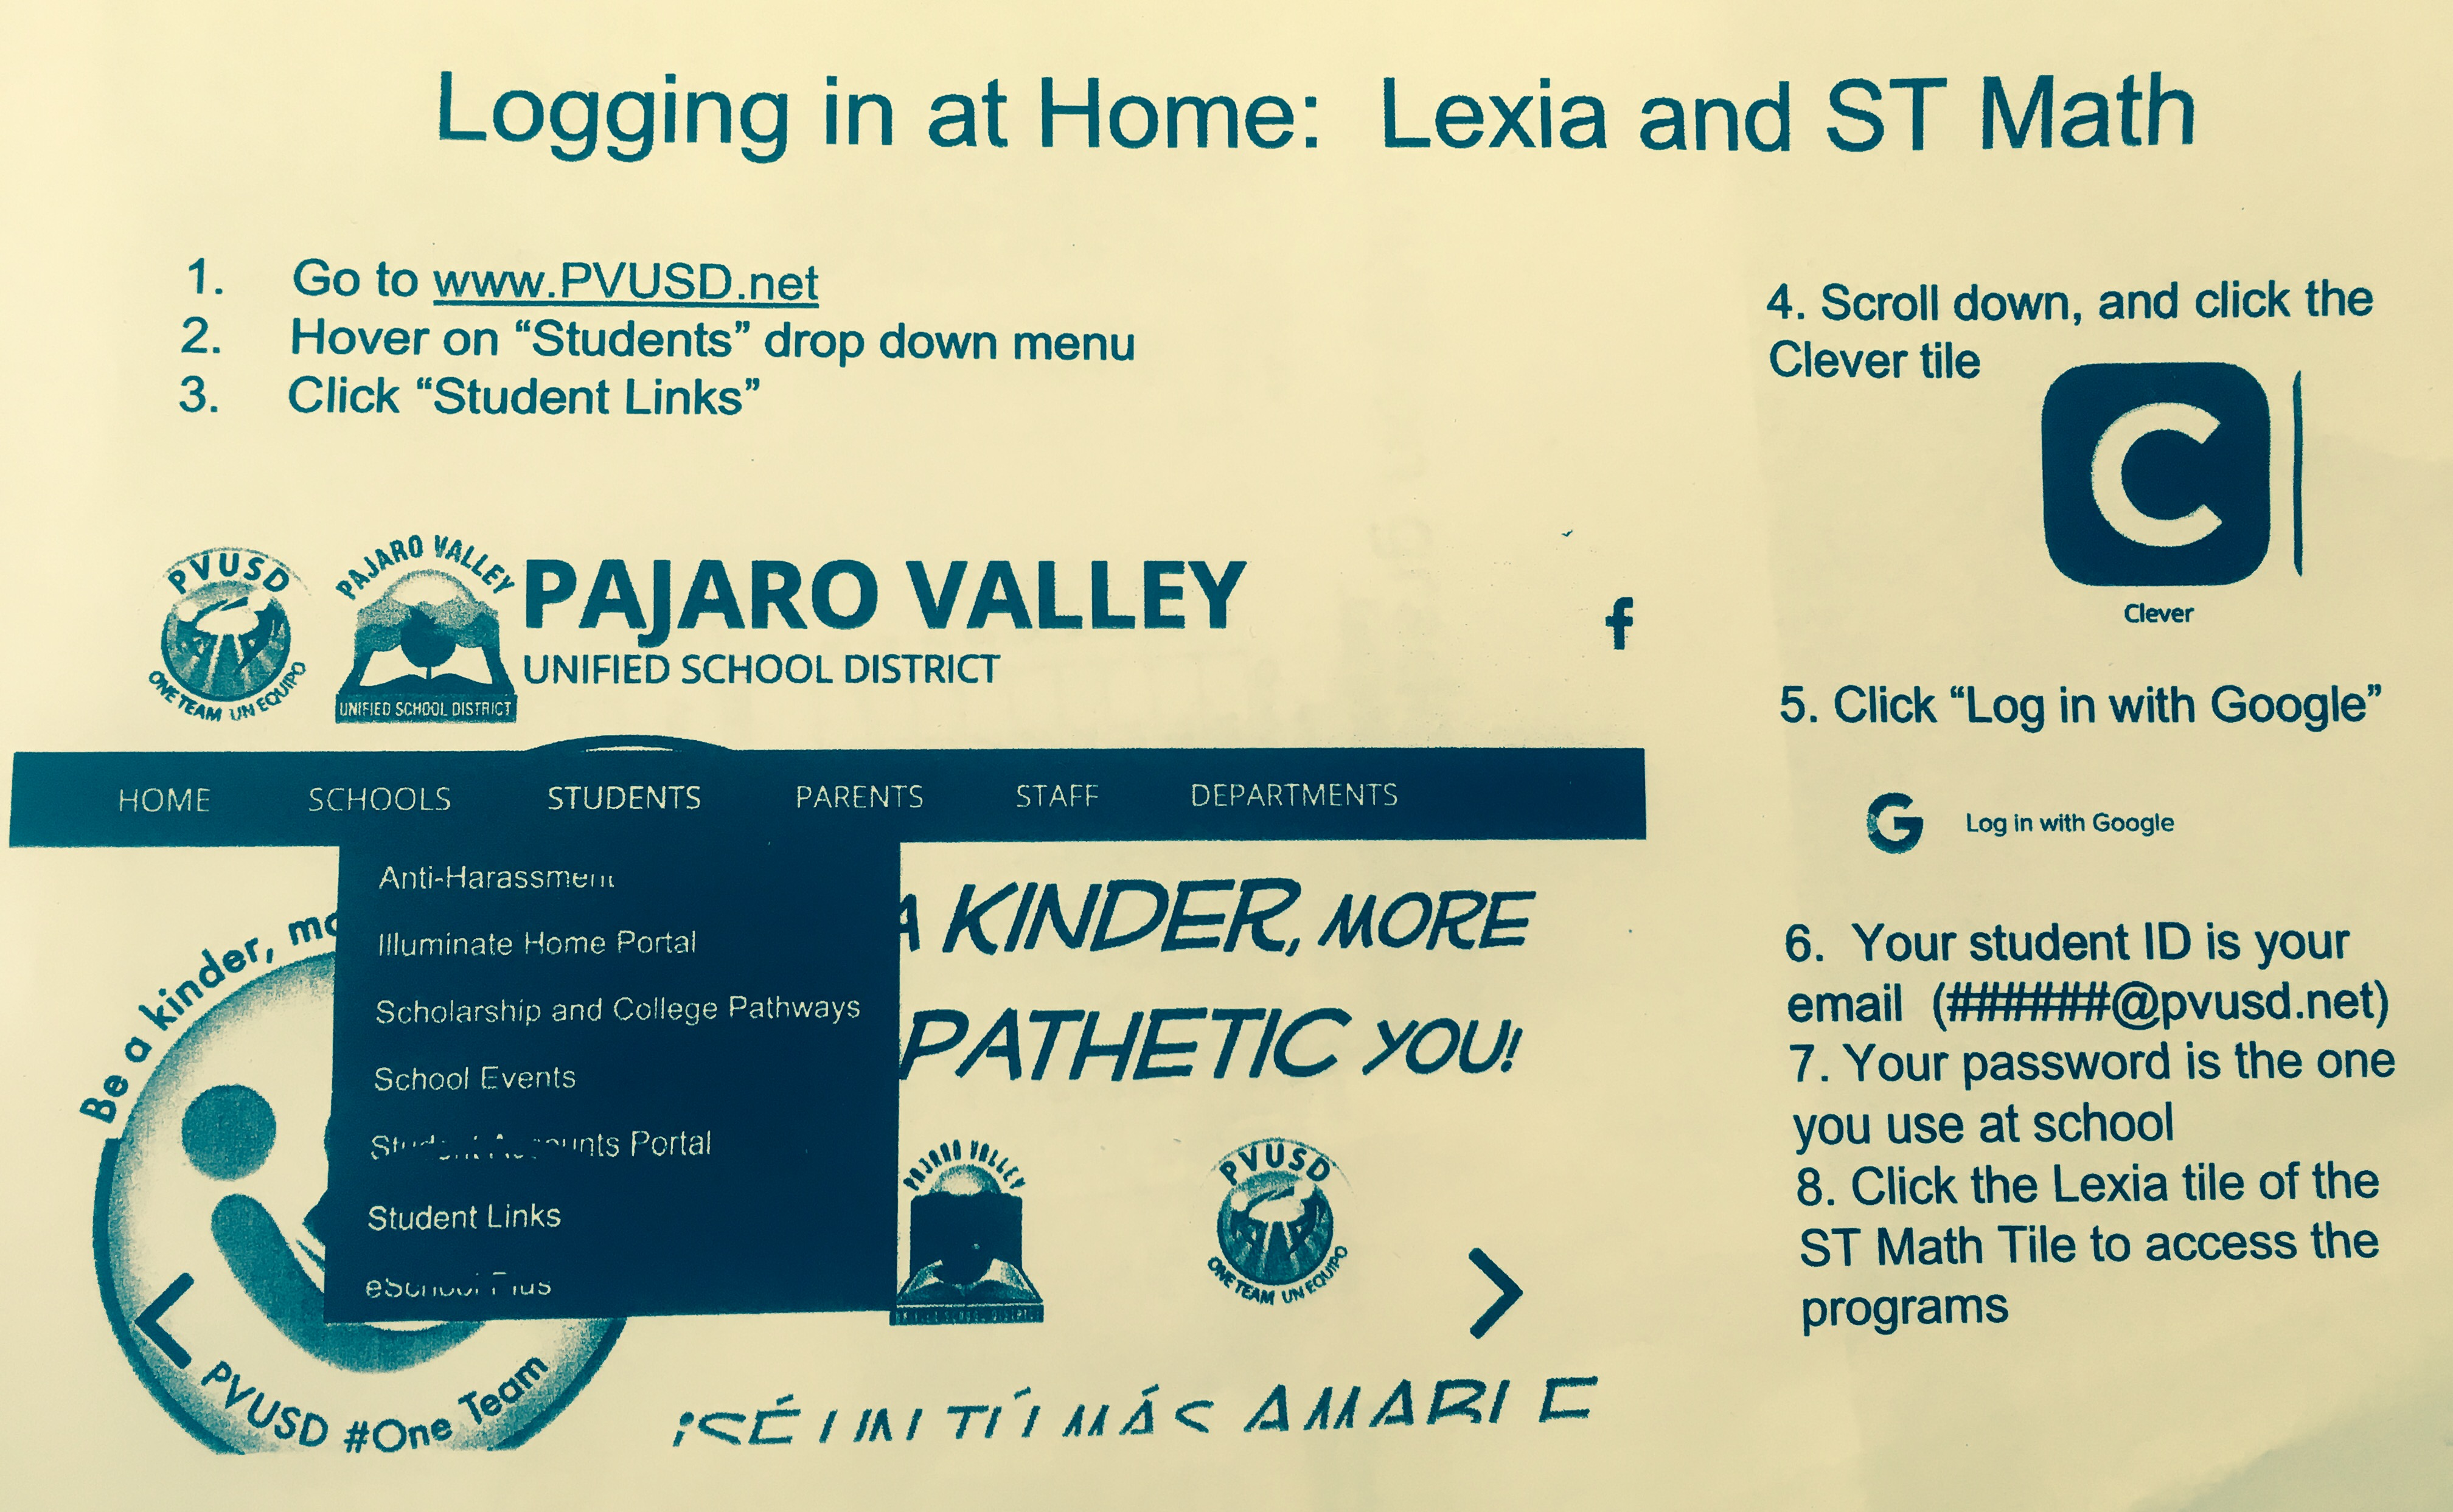 Logging in at home: ST Math and Lexia